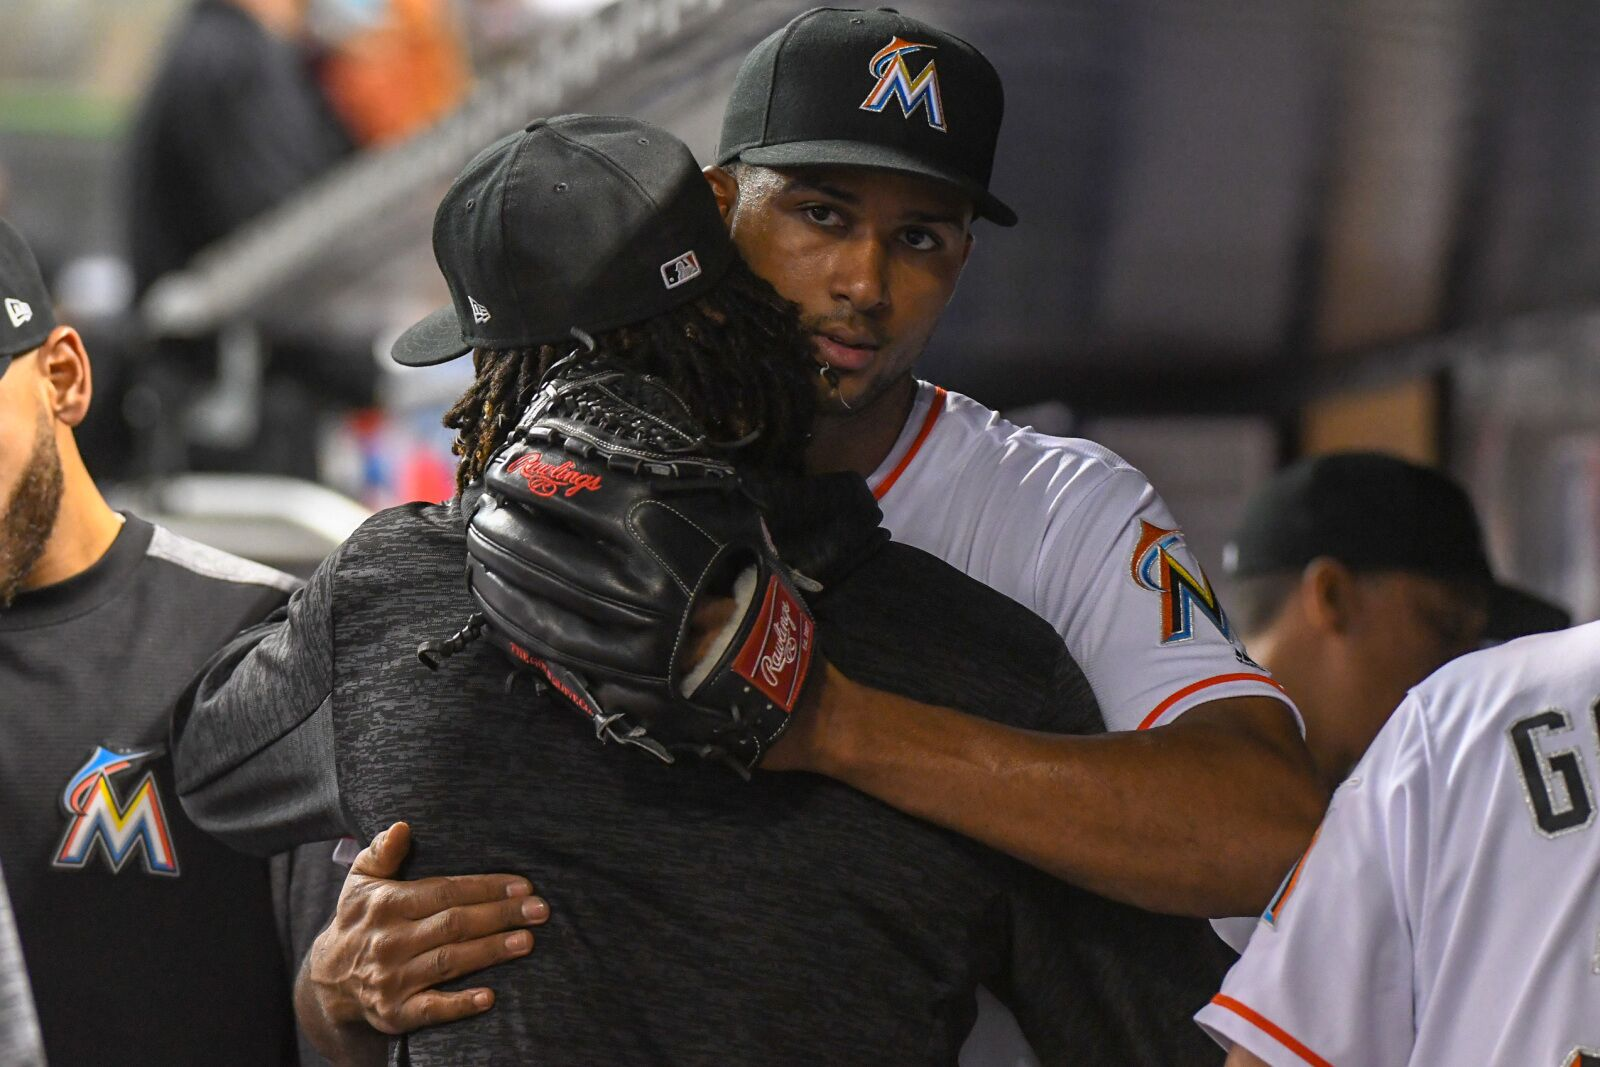 Marlins Spring Training News  The is competition everywhere e9f86dc66